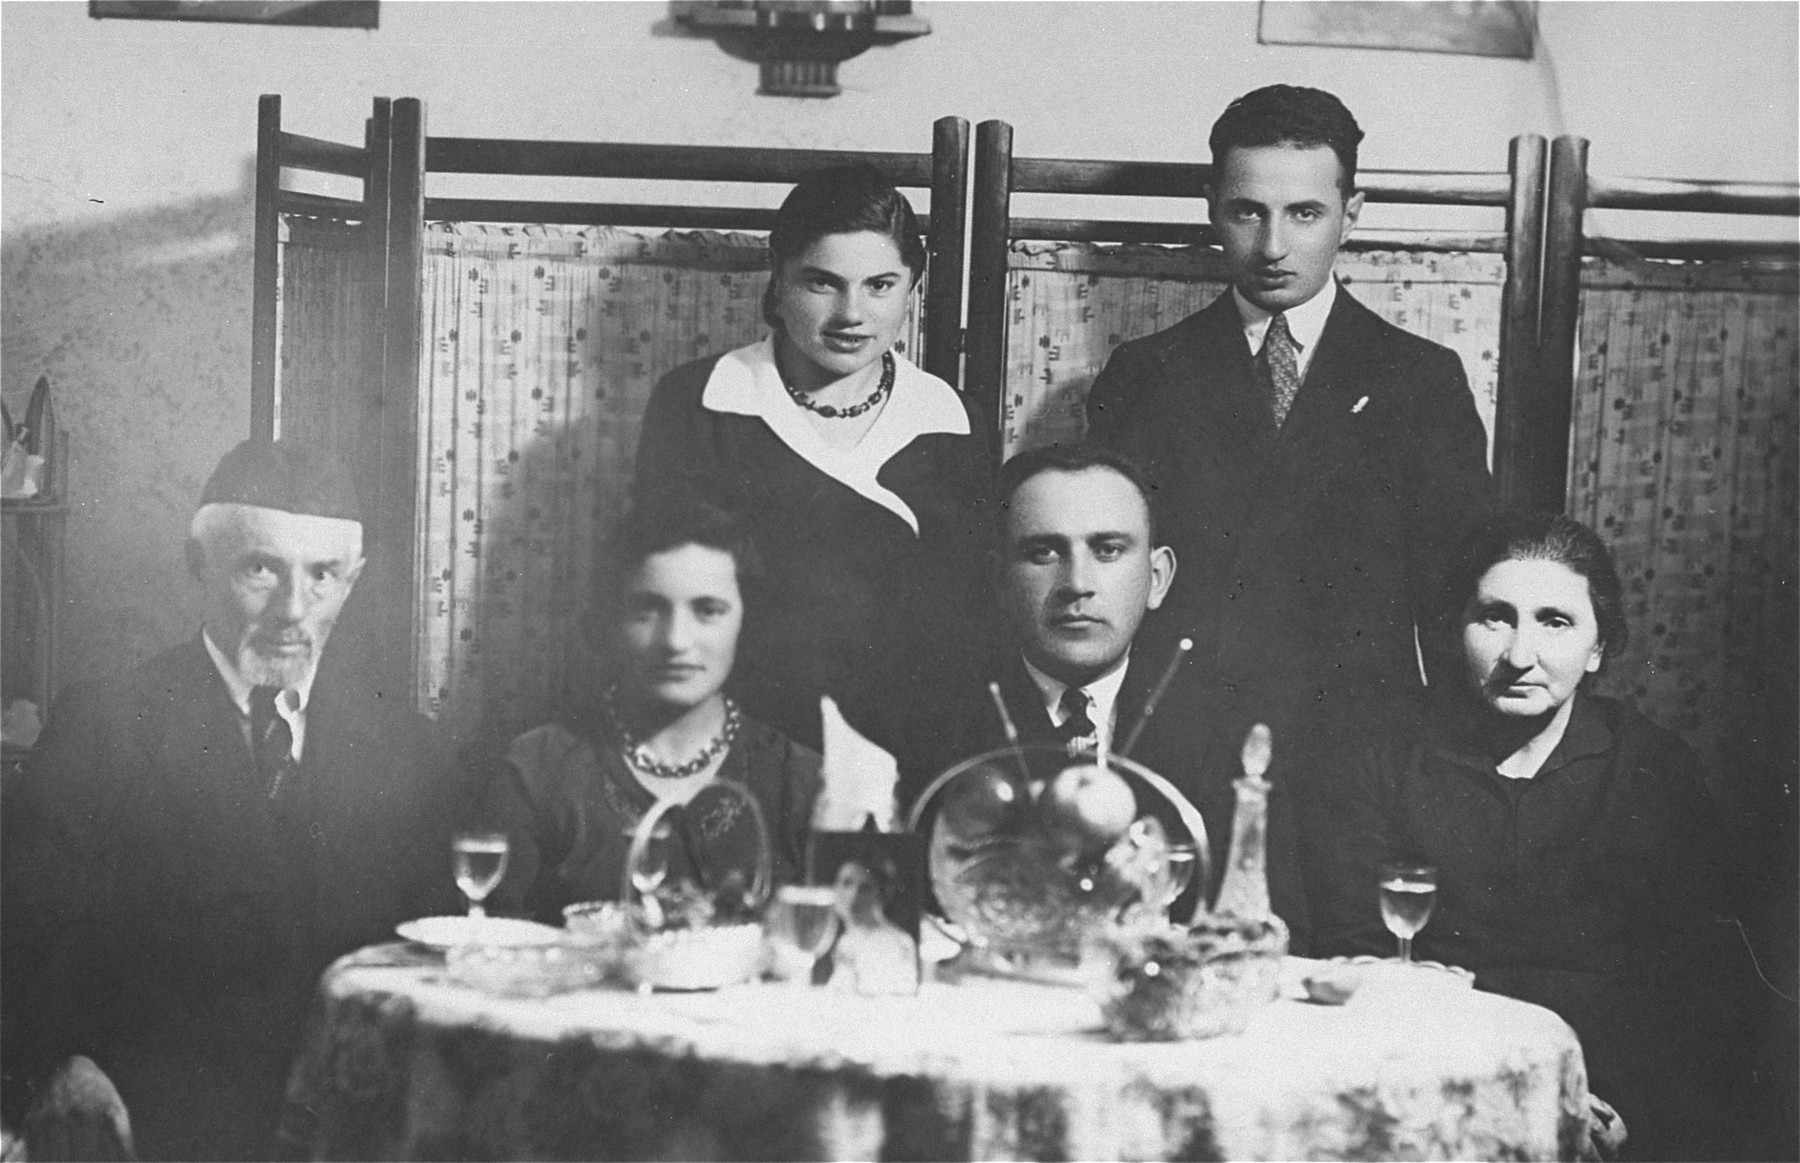 Group portrait of a lithuanian-Jewish family seated around a dinner table.  Pictured are the donor's uncle and aunt, Jacob and Baila Gar (standing) with Baila's parents, brother and sister.